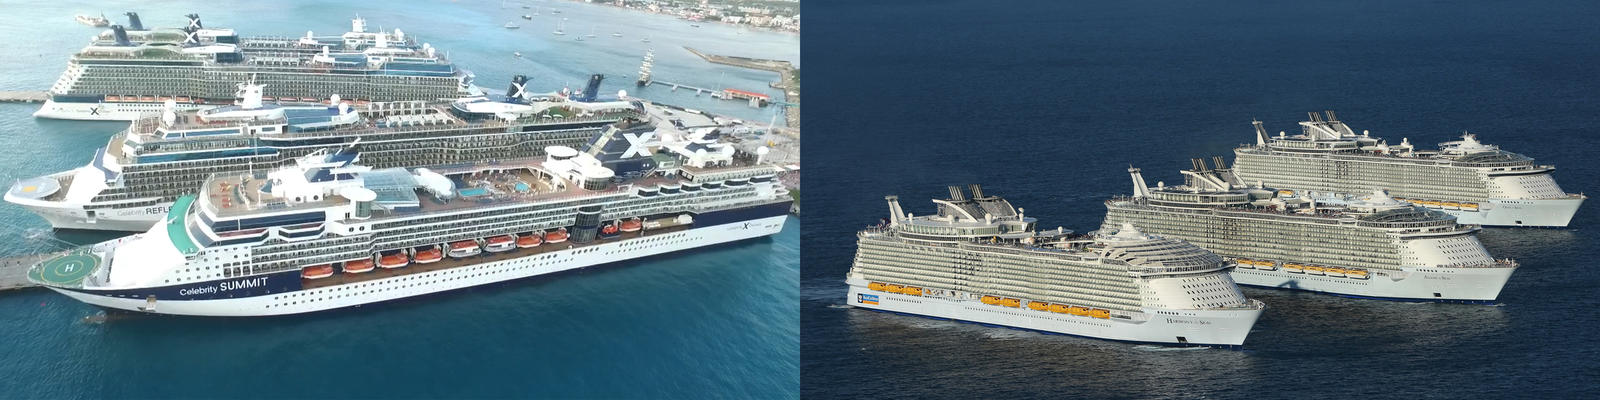 Celebrity Cruises vs. Royal Caribbean International